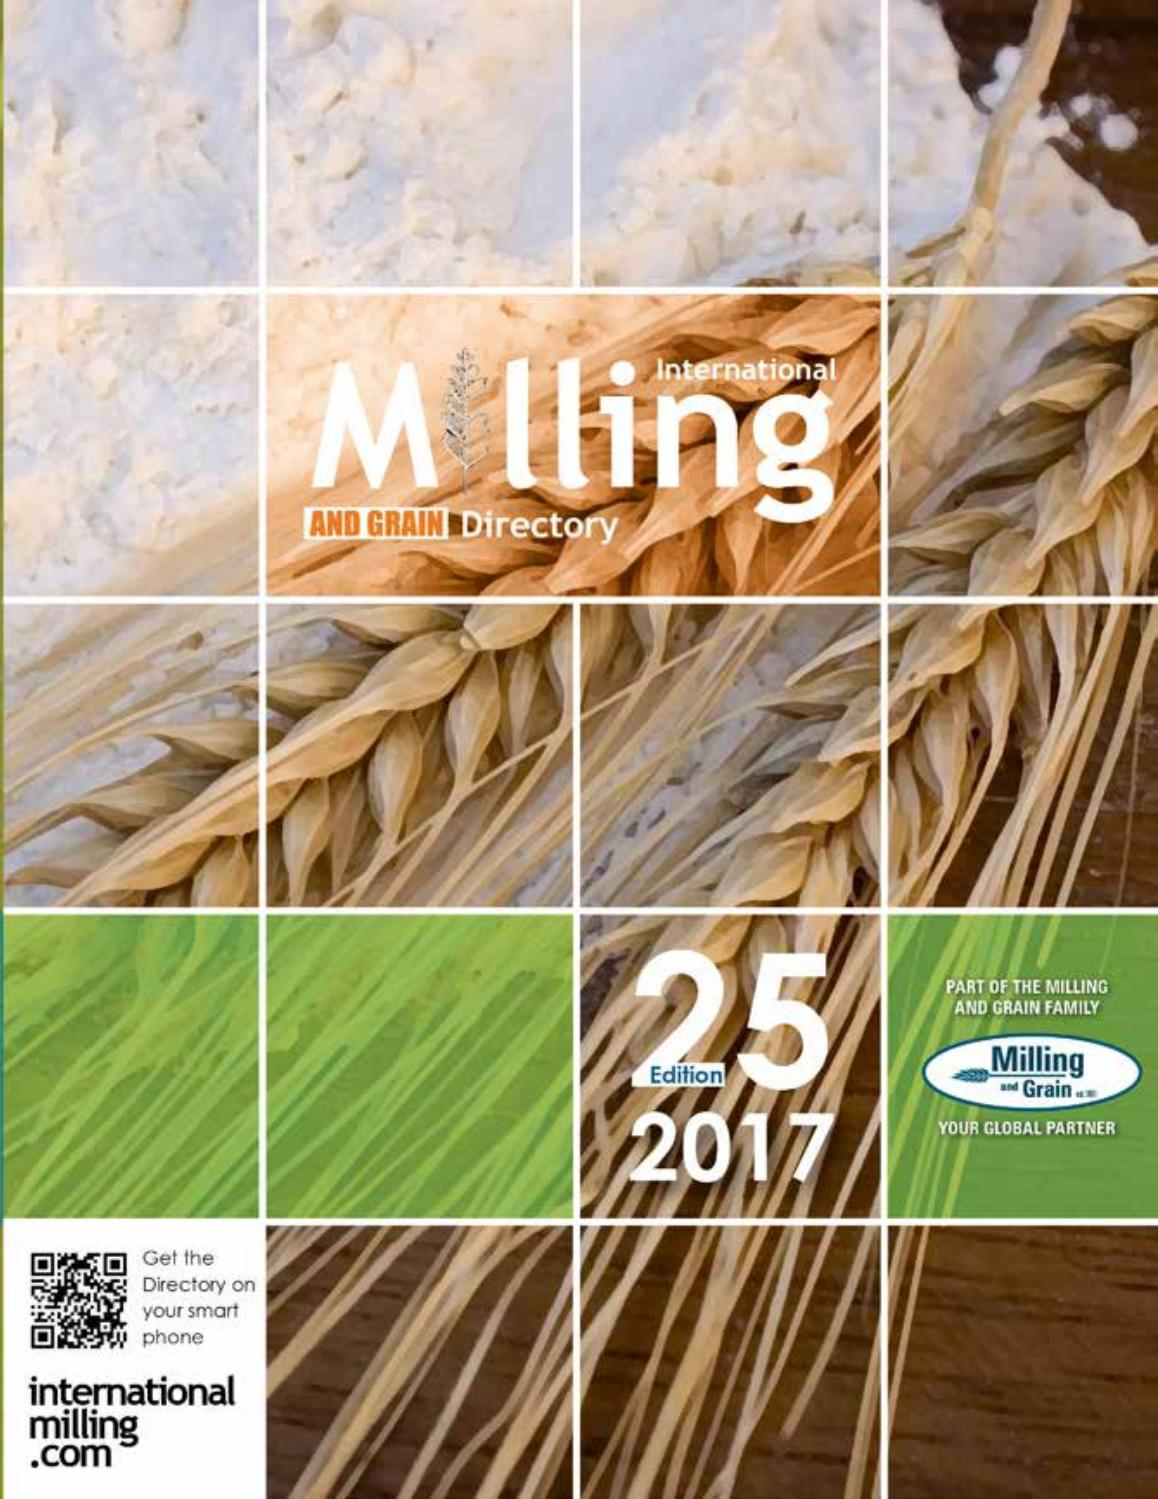 Ventilation system poultry breeder house north ireland opticon agri - International Milling Directory 25 2017 By Perendale Publishers Ltd Issuu